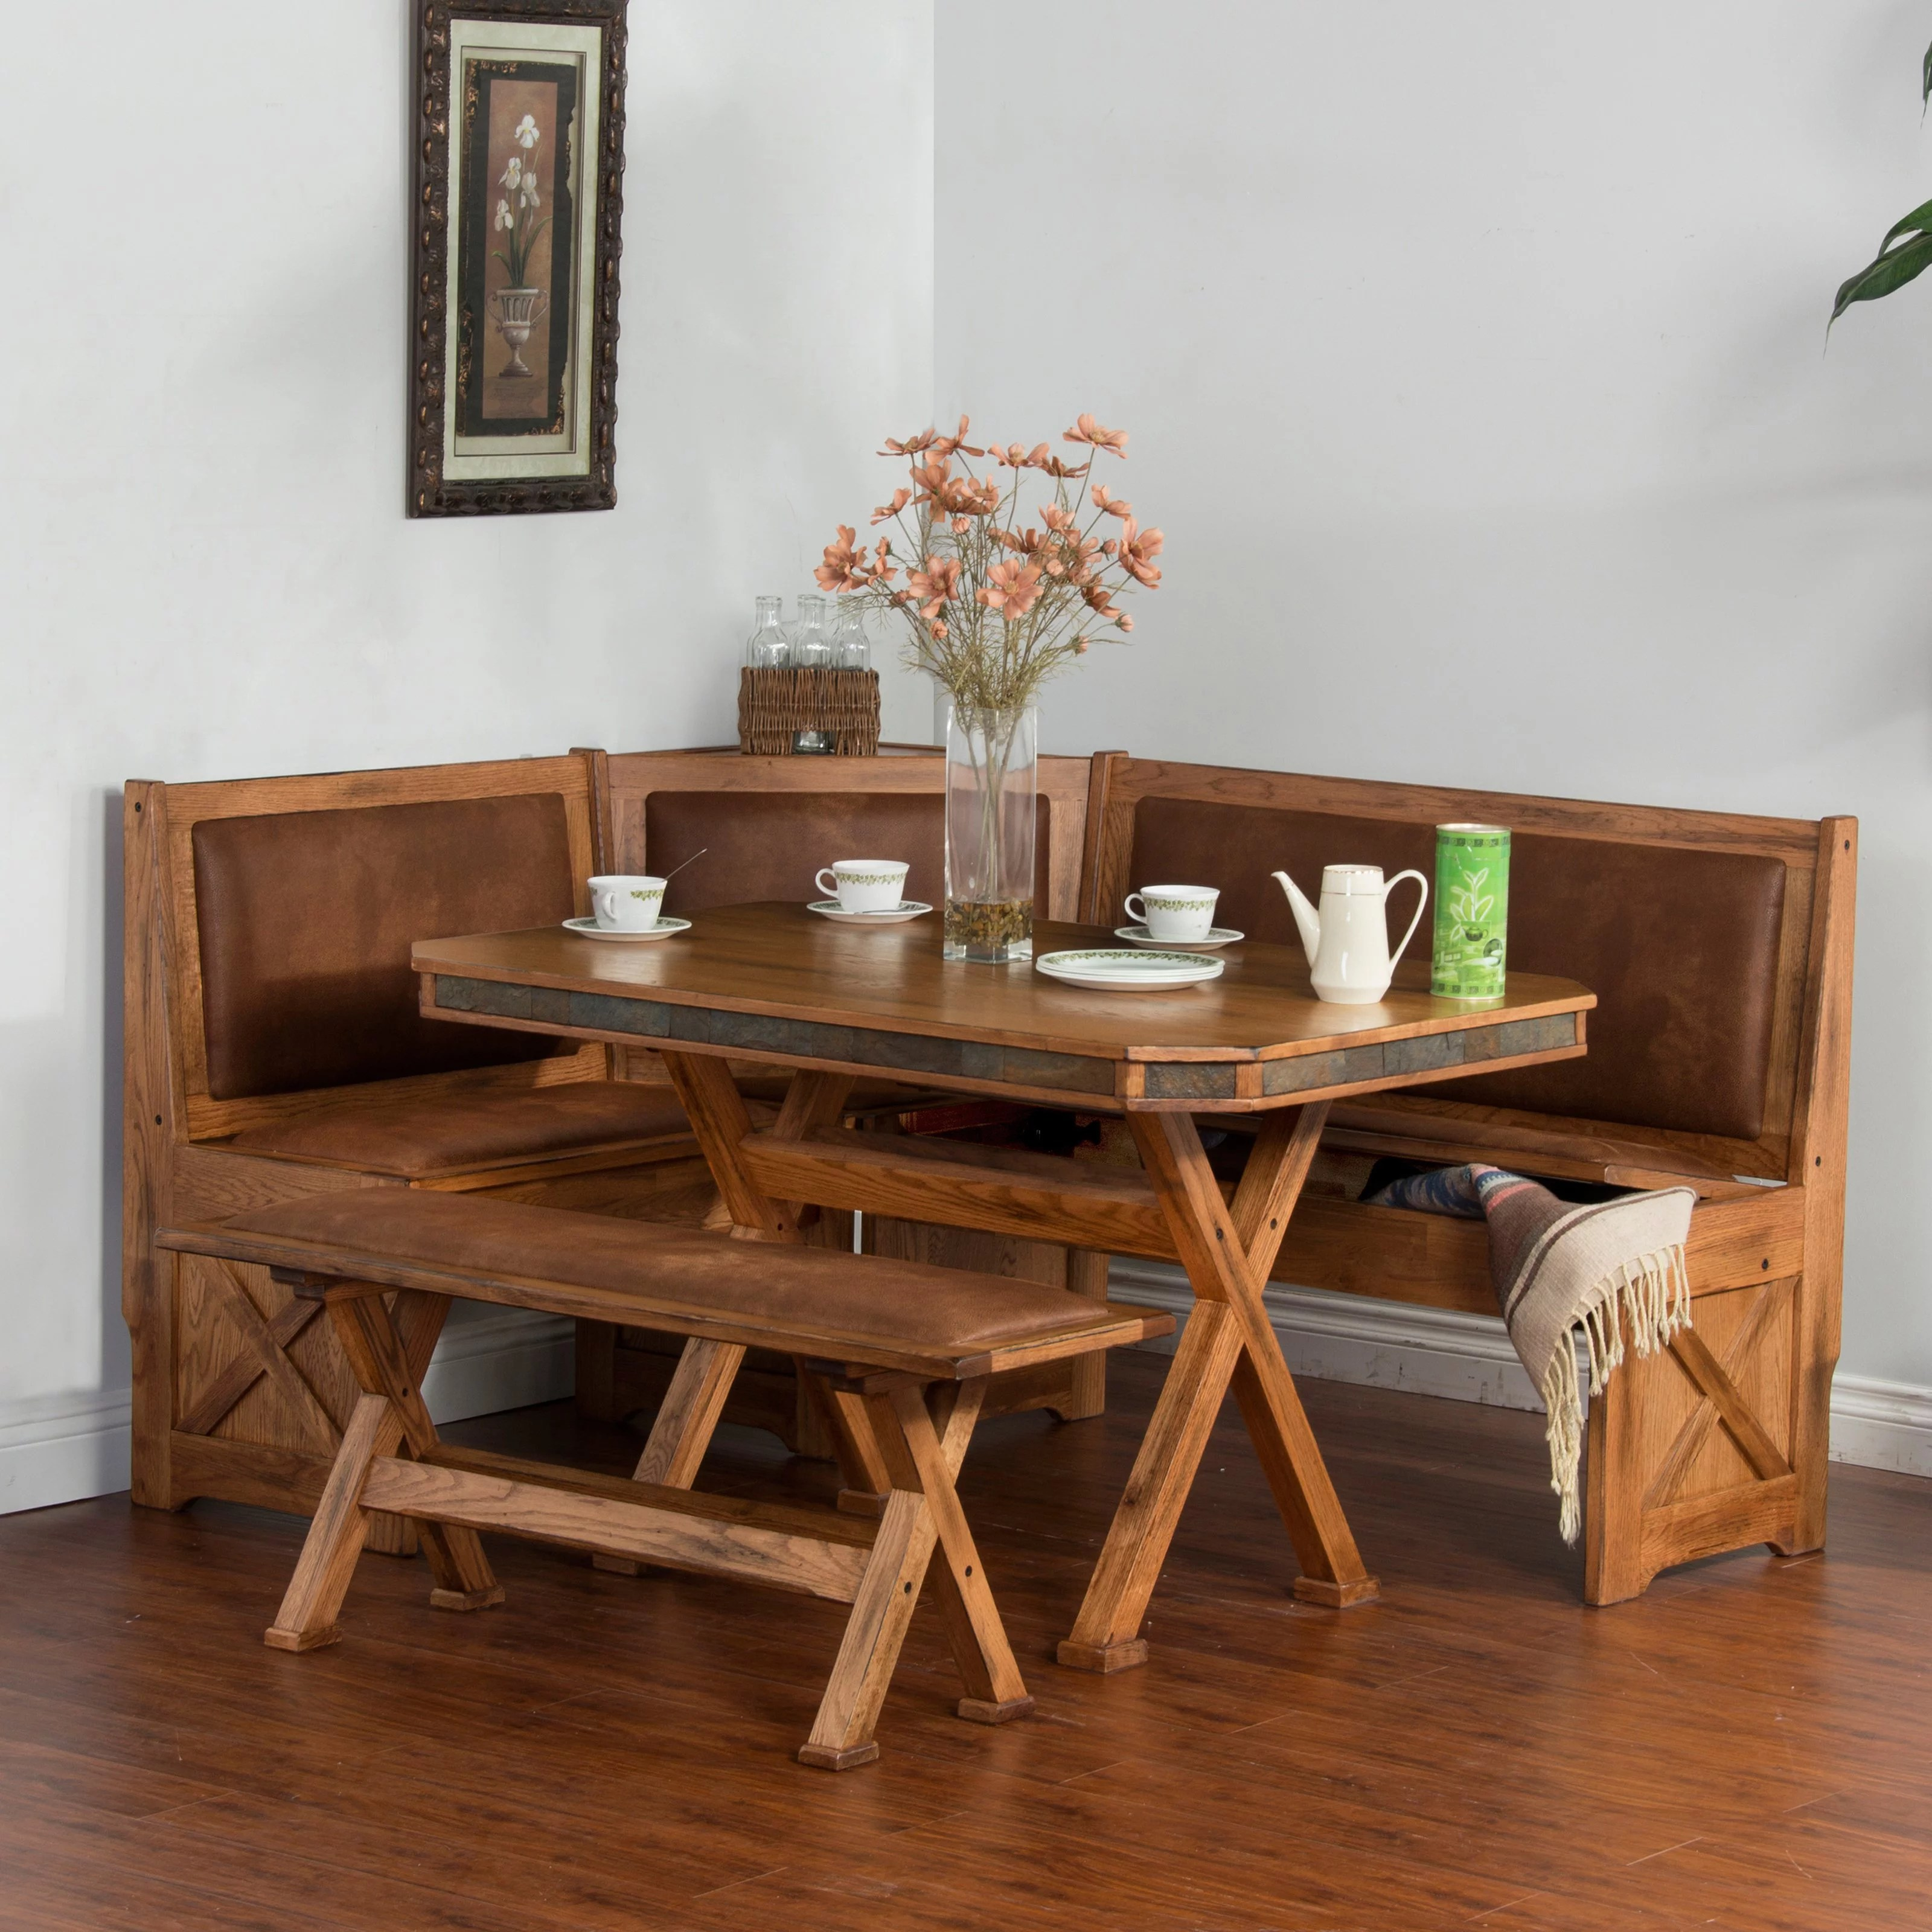 Tuscan Dining Room Table And Chairs The Most Impressive Home Design